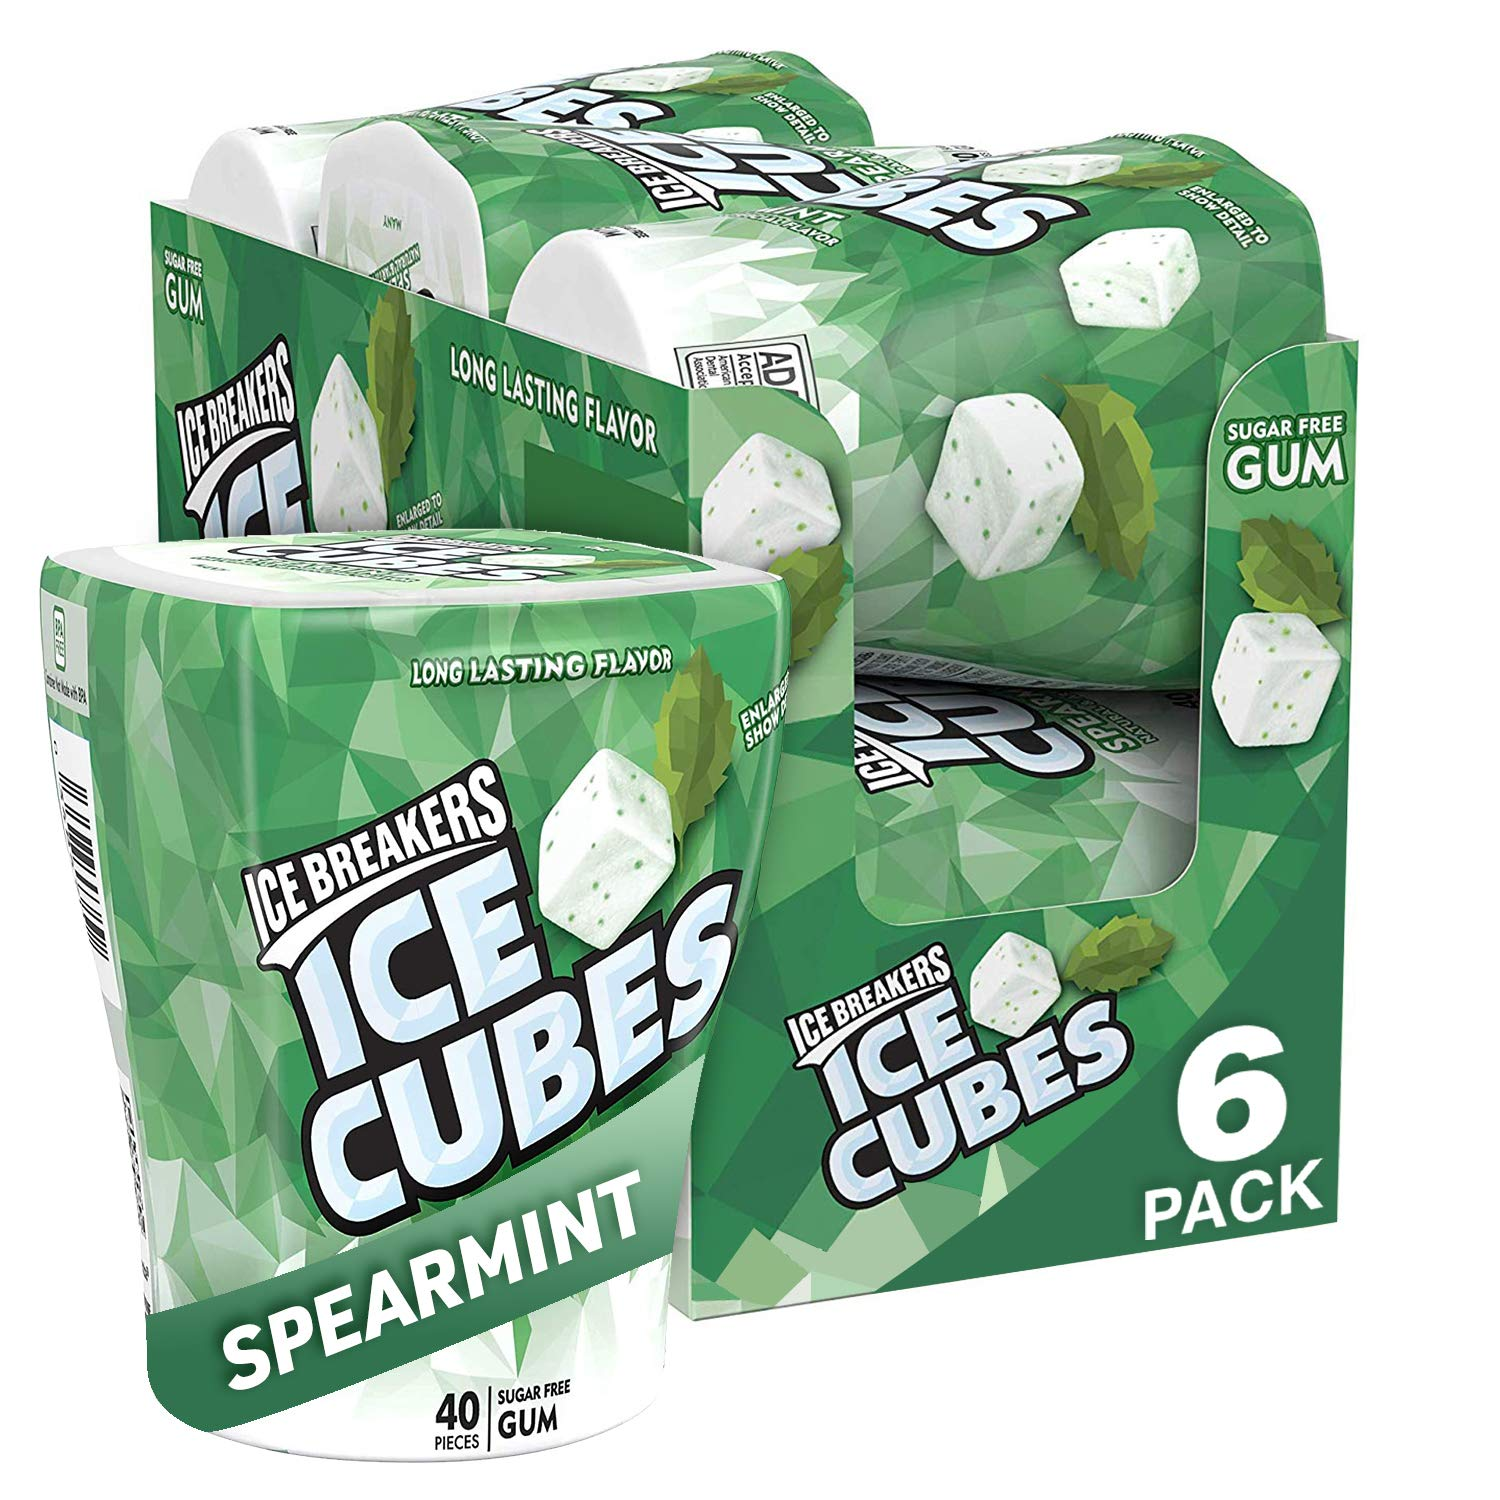 Ice Breakers Ice Cubes Sugar Free Gum with Xylitol, Spearmint, 40 Count, Pack of 6